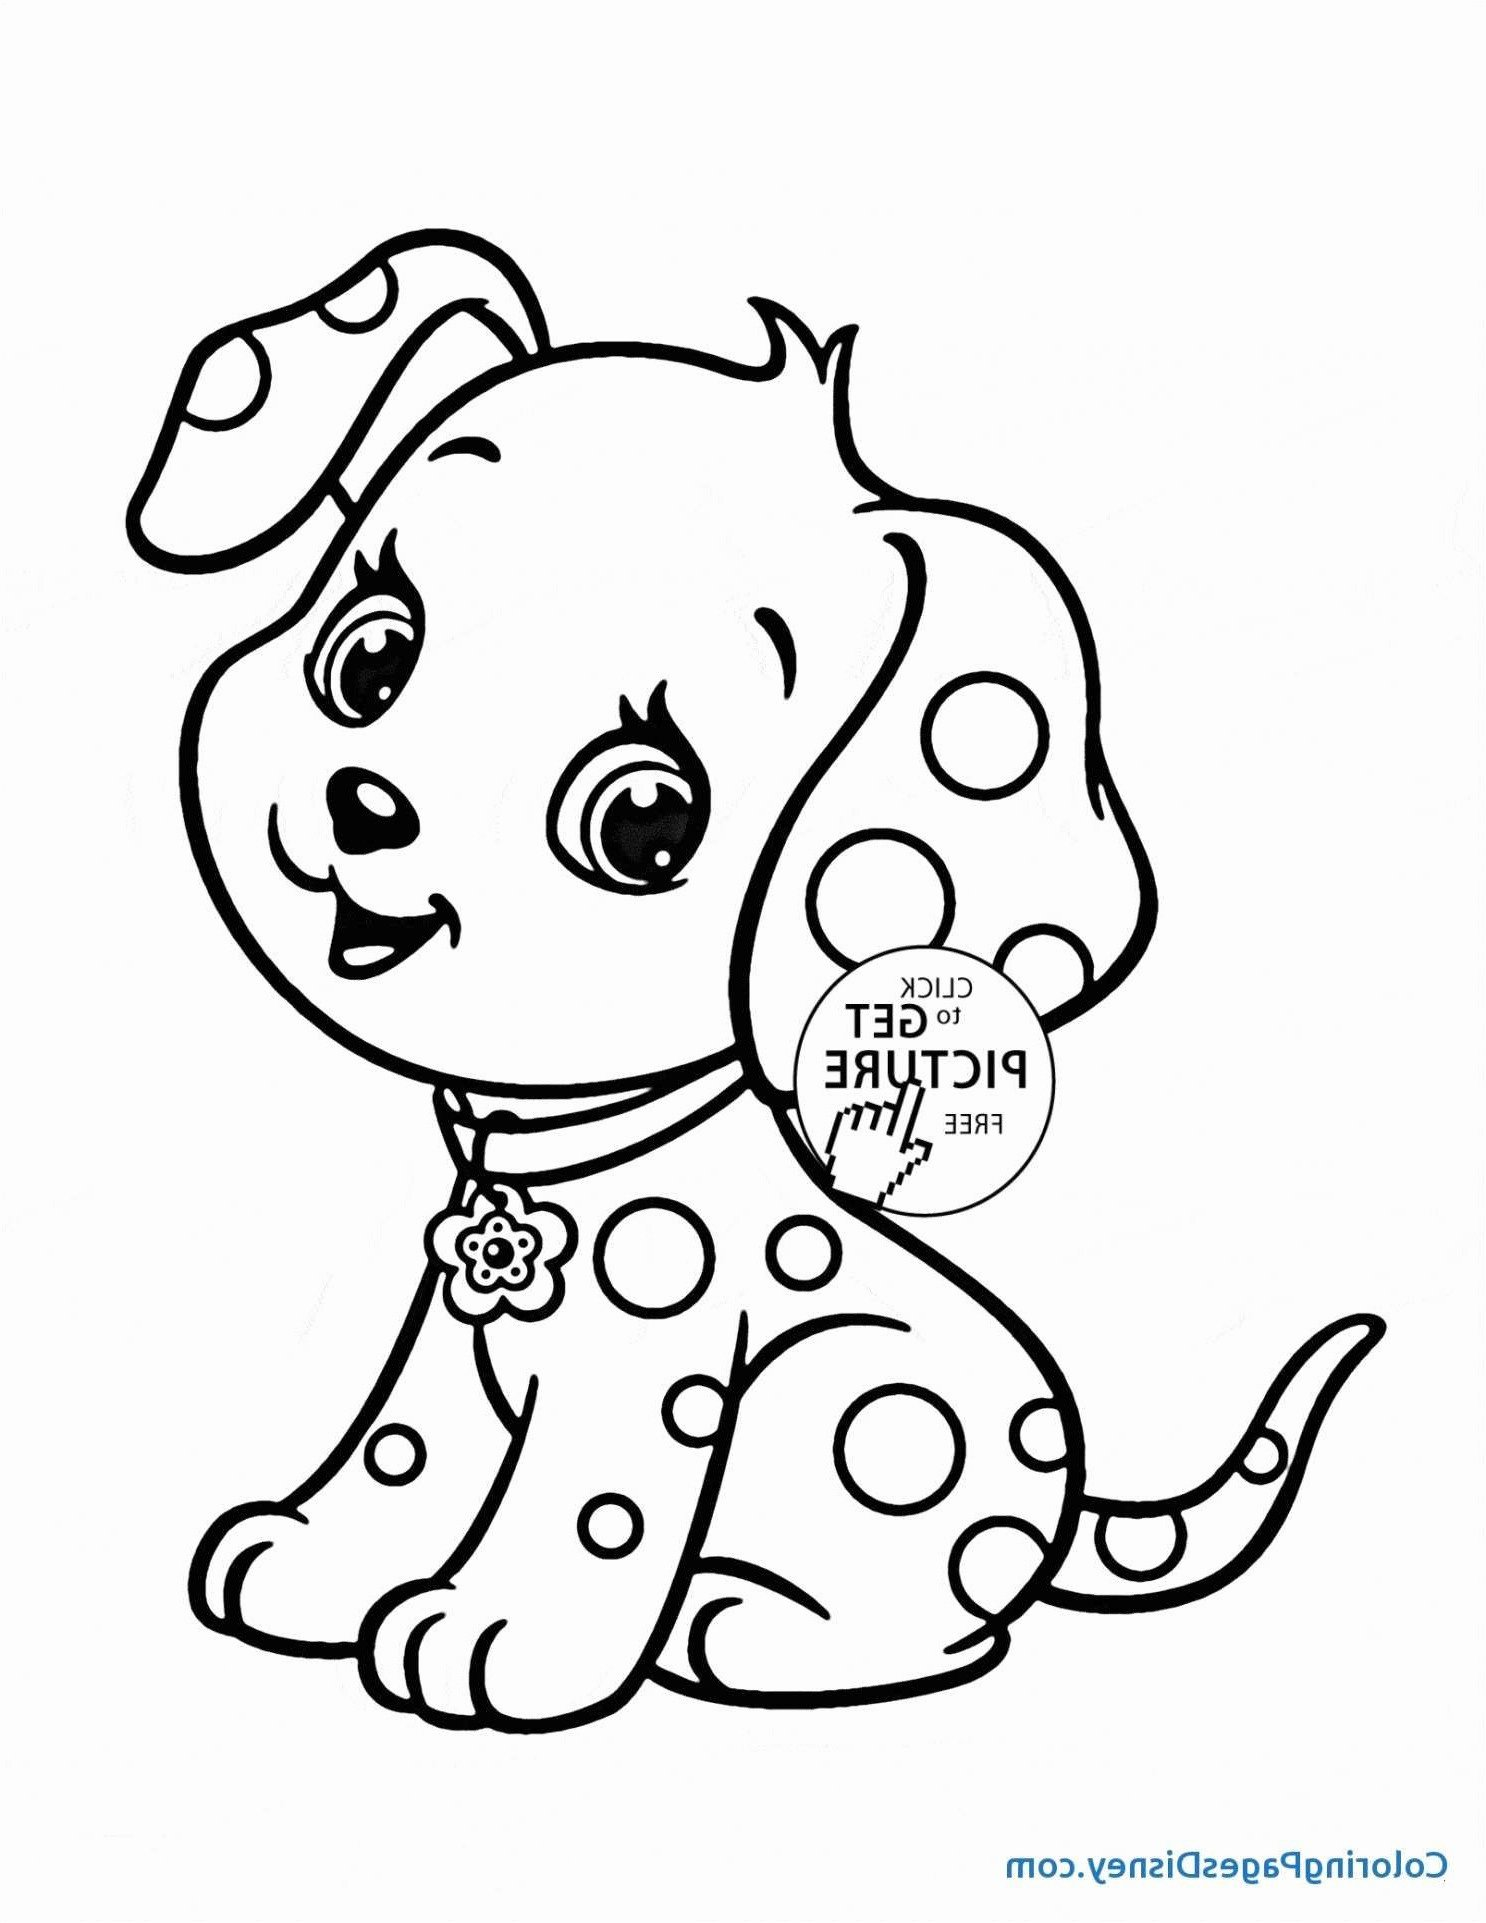 Printable Coloring Worksheets for Preschoolers Lovely Coloring Pages Free Printable Books for toddlers Luxury Book